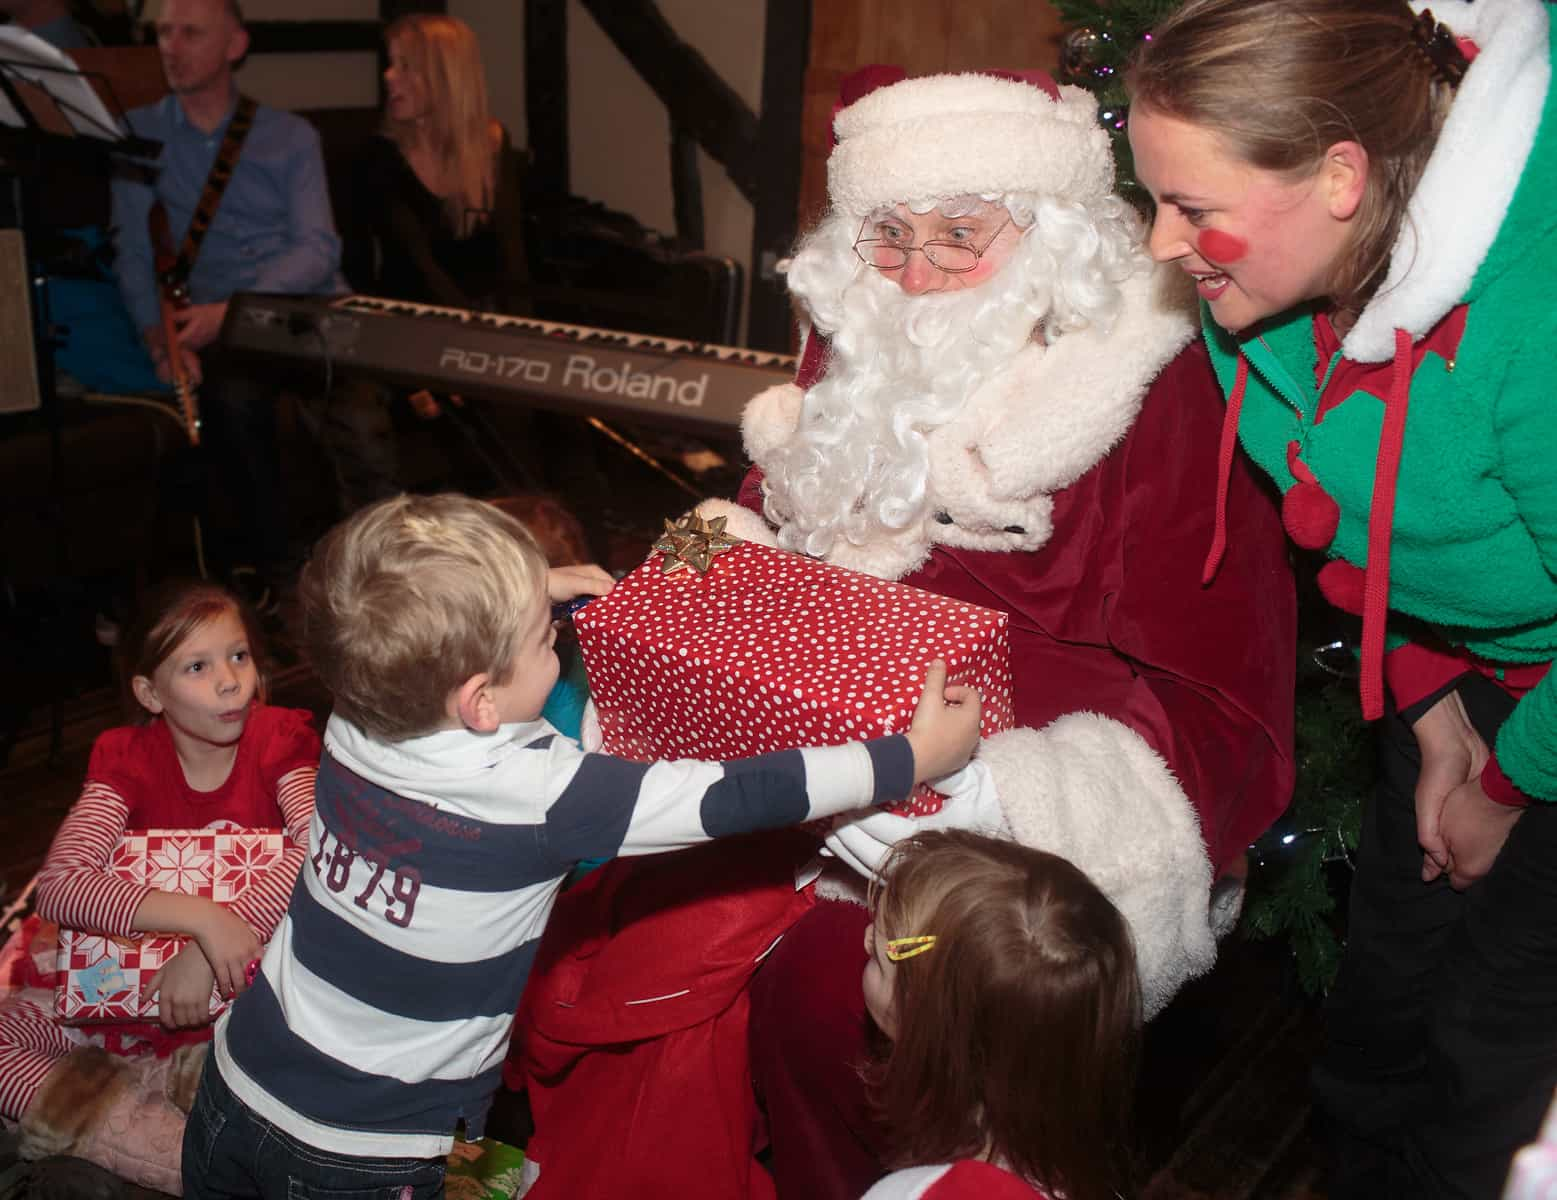 Santa gives presents in The George